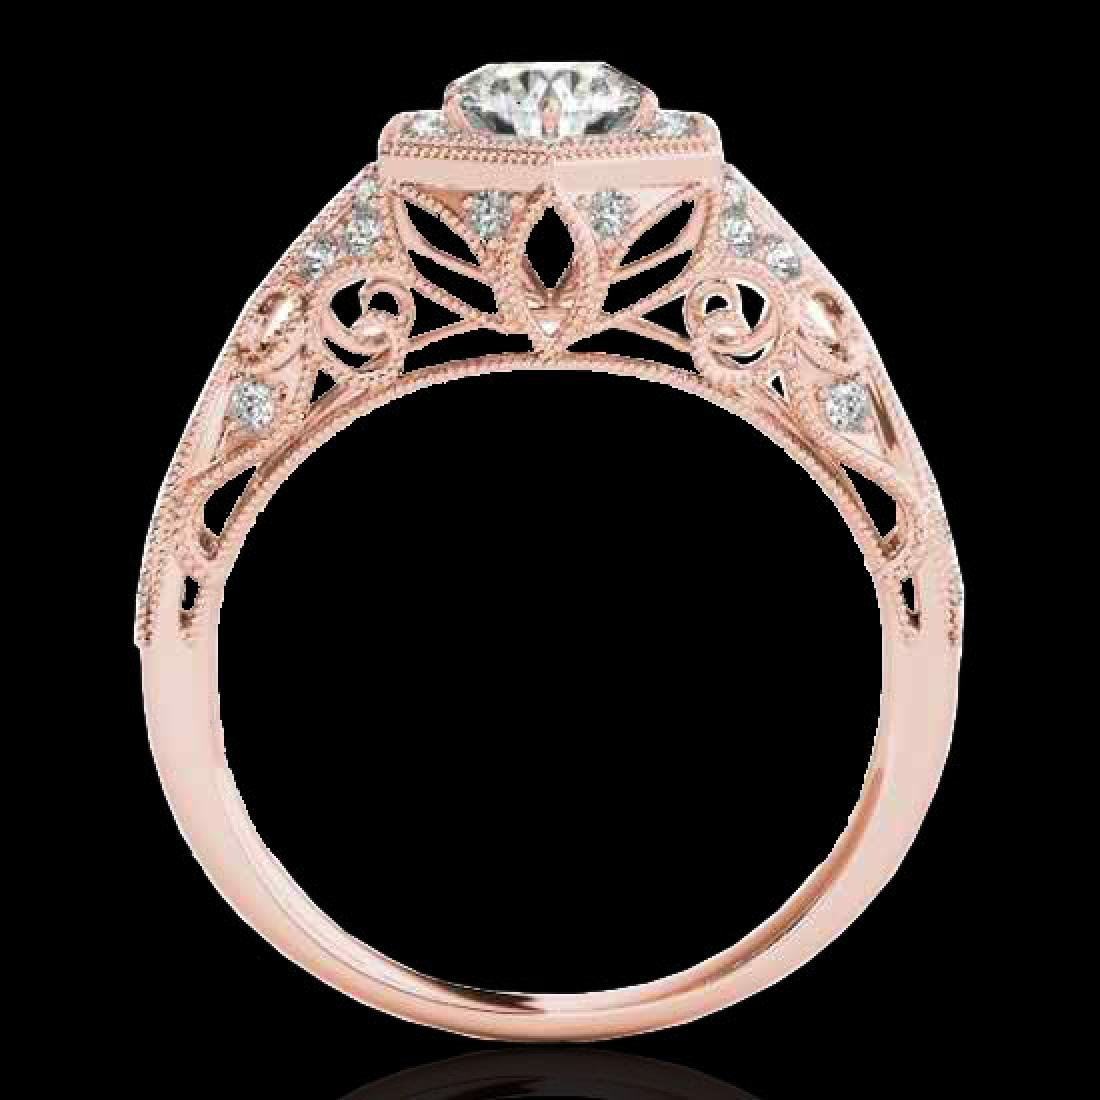 1.4 CTW H-SI/I Certified Diamond Solitaire Antique Ring - 2